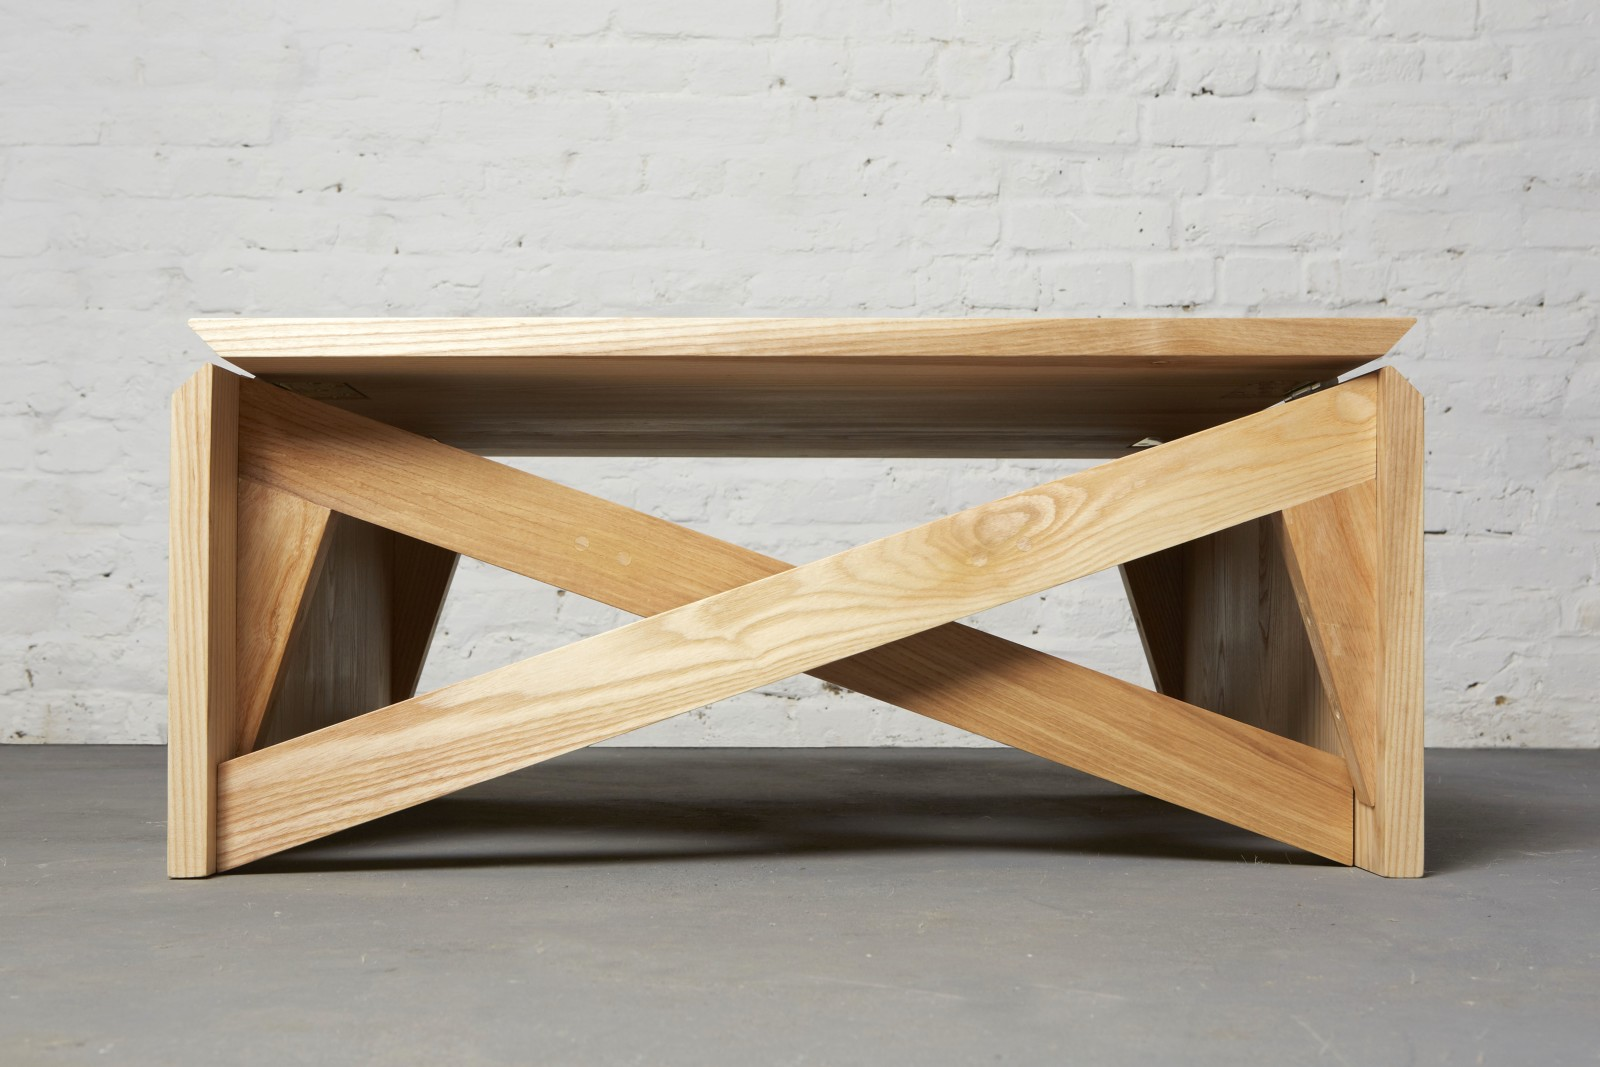 MK1 Transforming Combined Table Oak